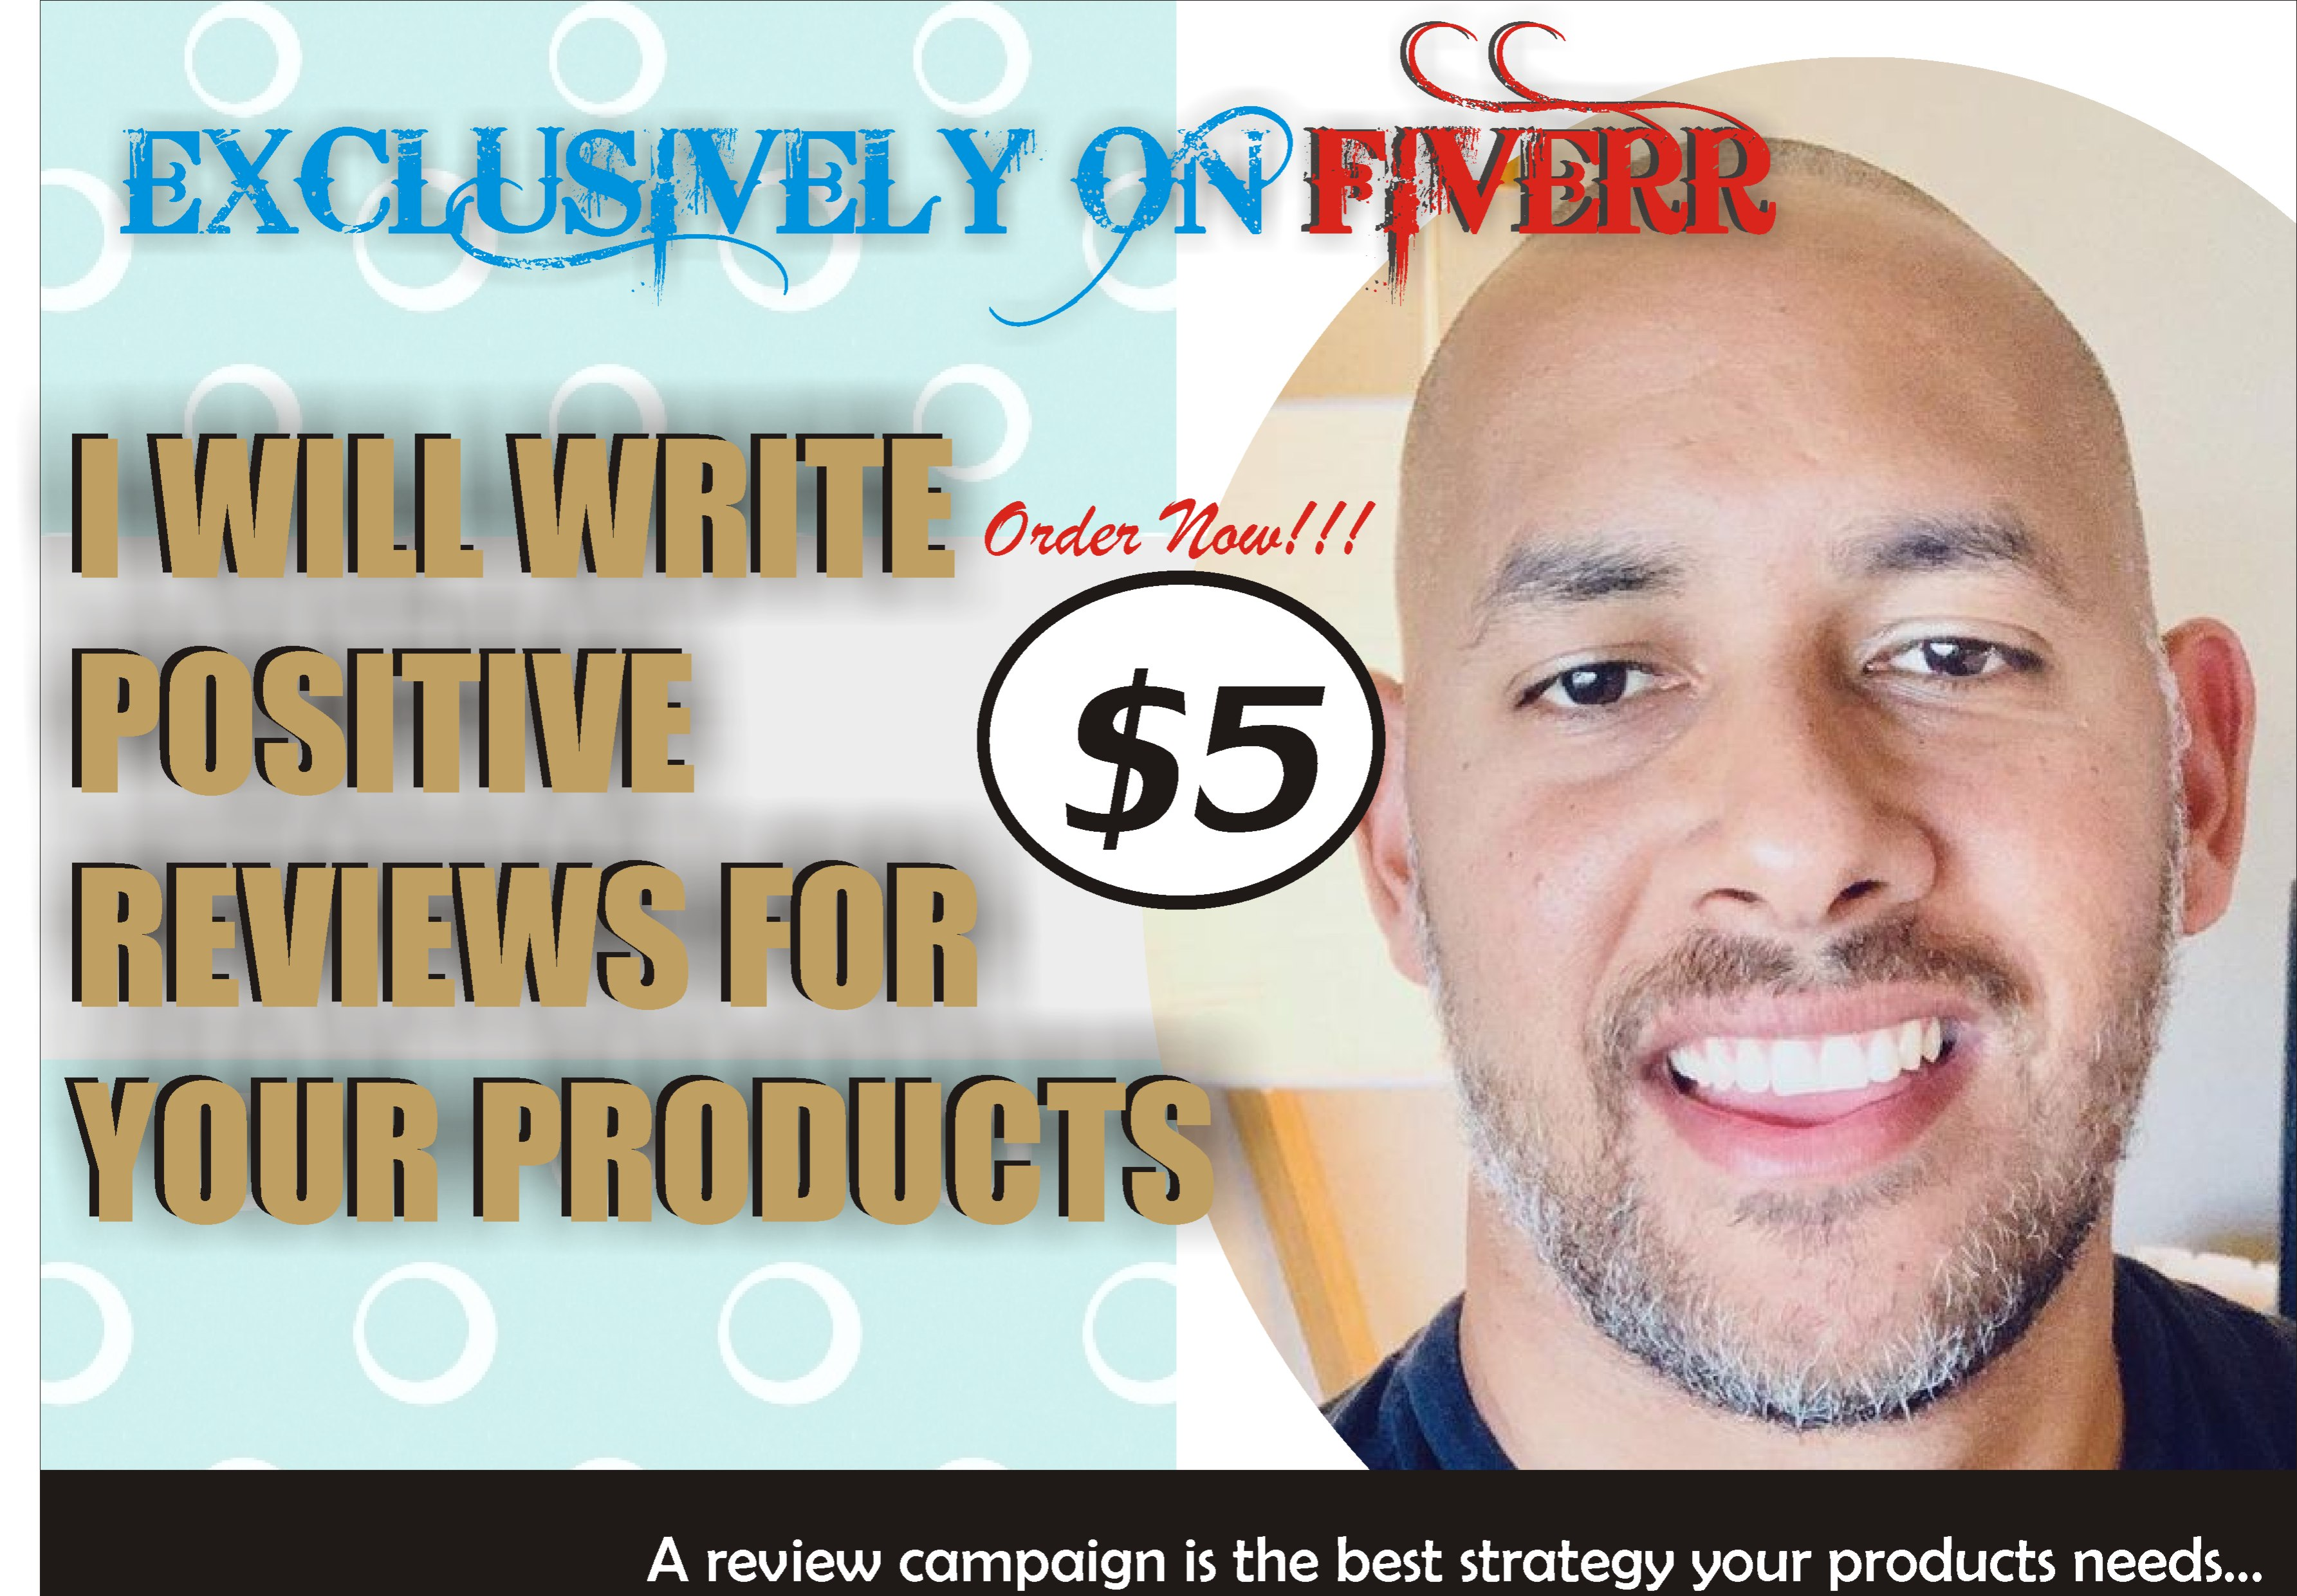 I will write products reviews to boost sales